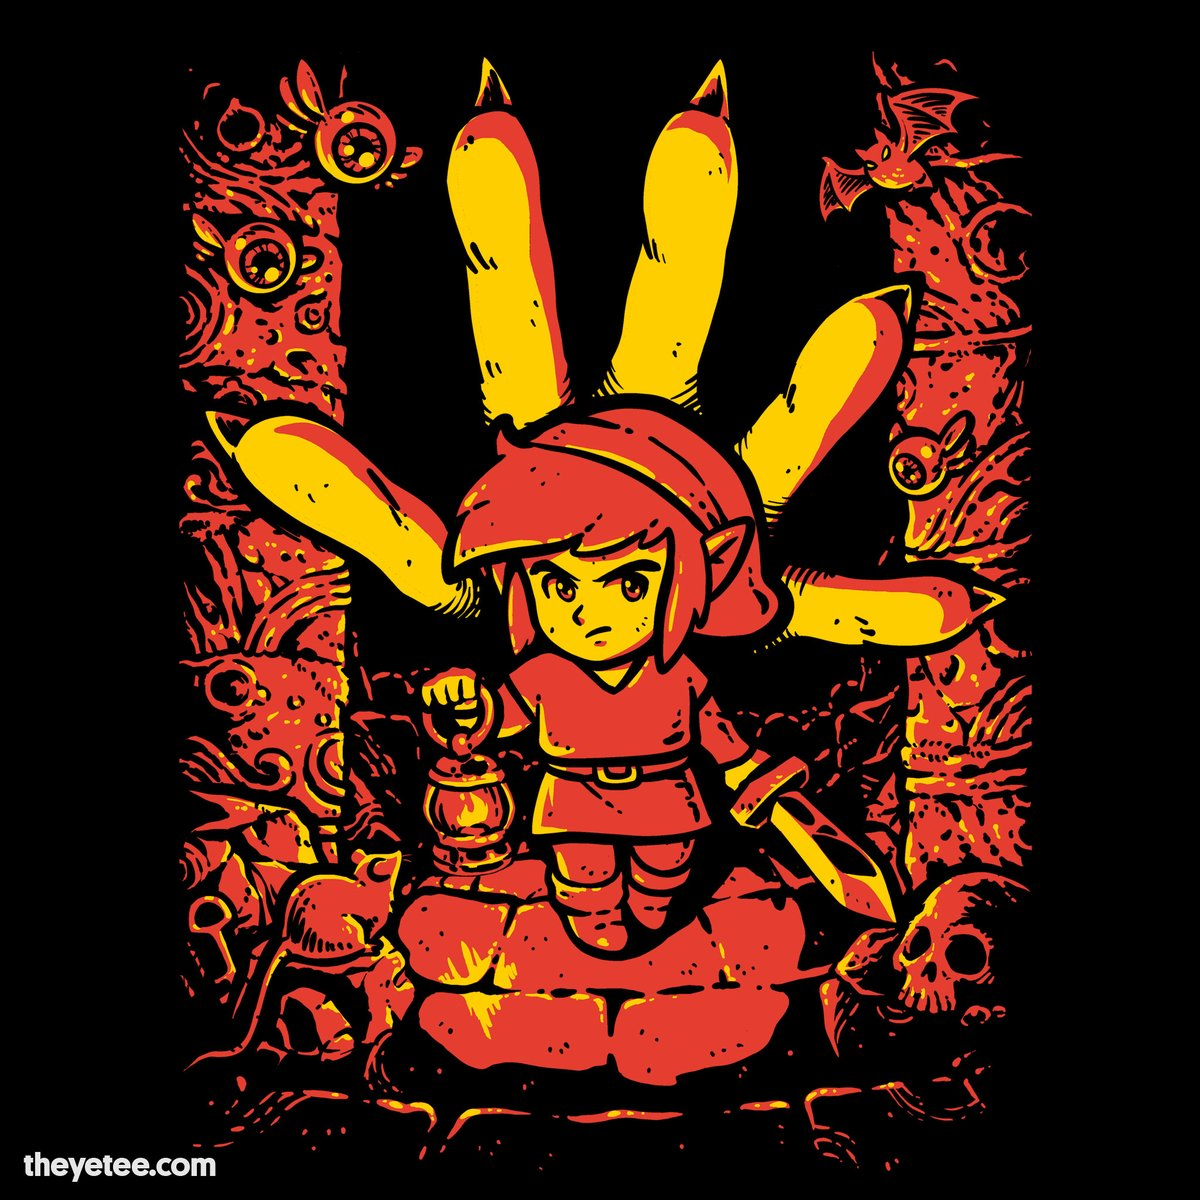 The Yetee On Twitter As If Navigating Dangerous Dungeons Battling Evil And Being 3 Feet Tall Weren T Enough On Their Own Https T Co Zd8uexq3ta Https T Co O2uno8s4fe We found that theyetee.com is moderately 'socialized' in respect to facebook shares (63.6k), twitter mentions (21.7k) and google+ shares (155). twitter